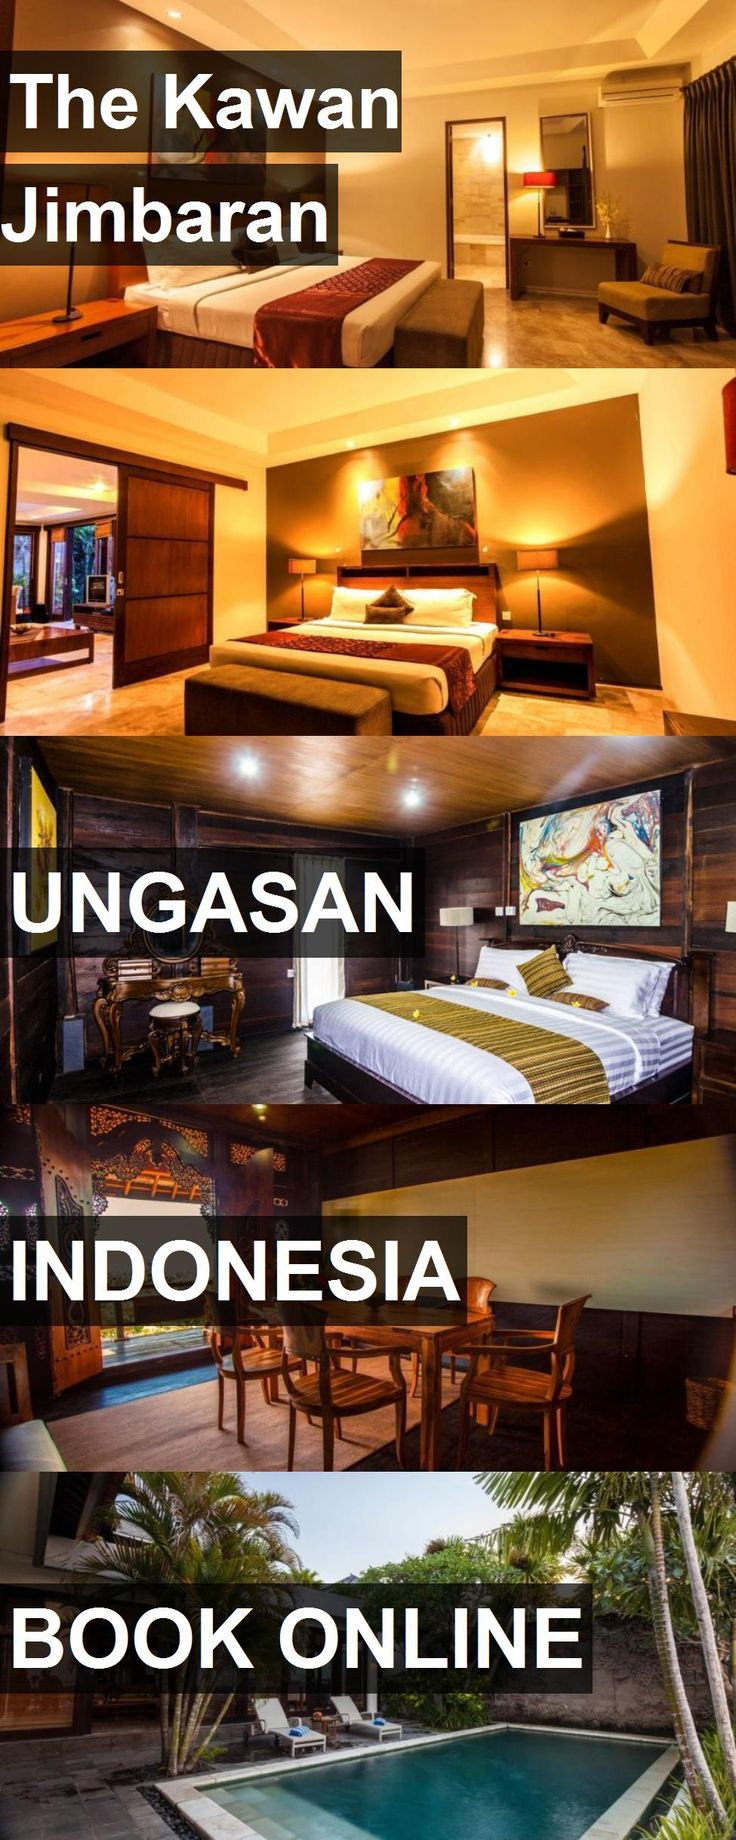 Hotel The Kawan Jimbaran in Ungasan, Indonesia. For more information, photos, reviews and best prices please follow the link. #Indonesia #Ungasan #travel #vacation #hotel